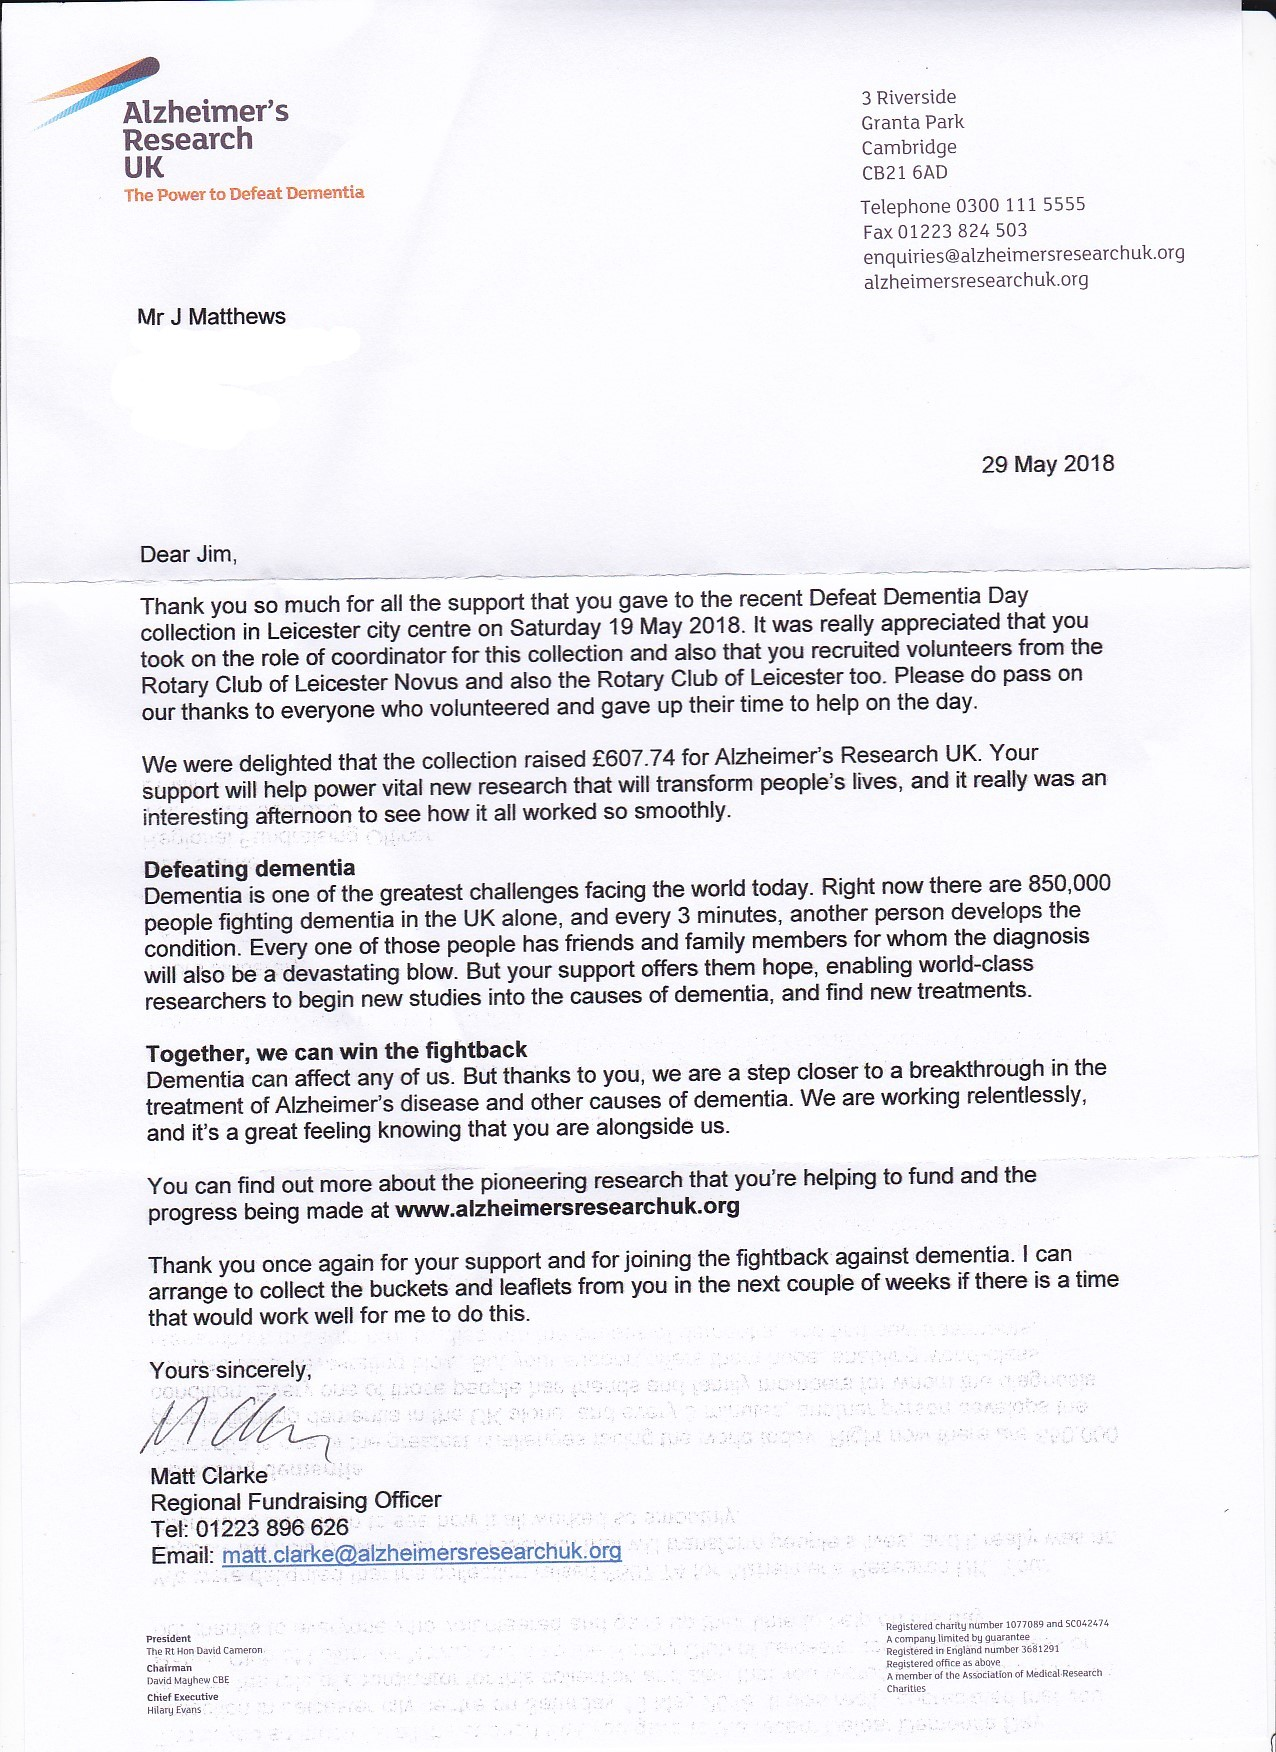 Letter of thanks from Alzheimer's Research UK